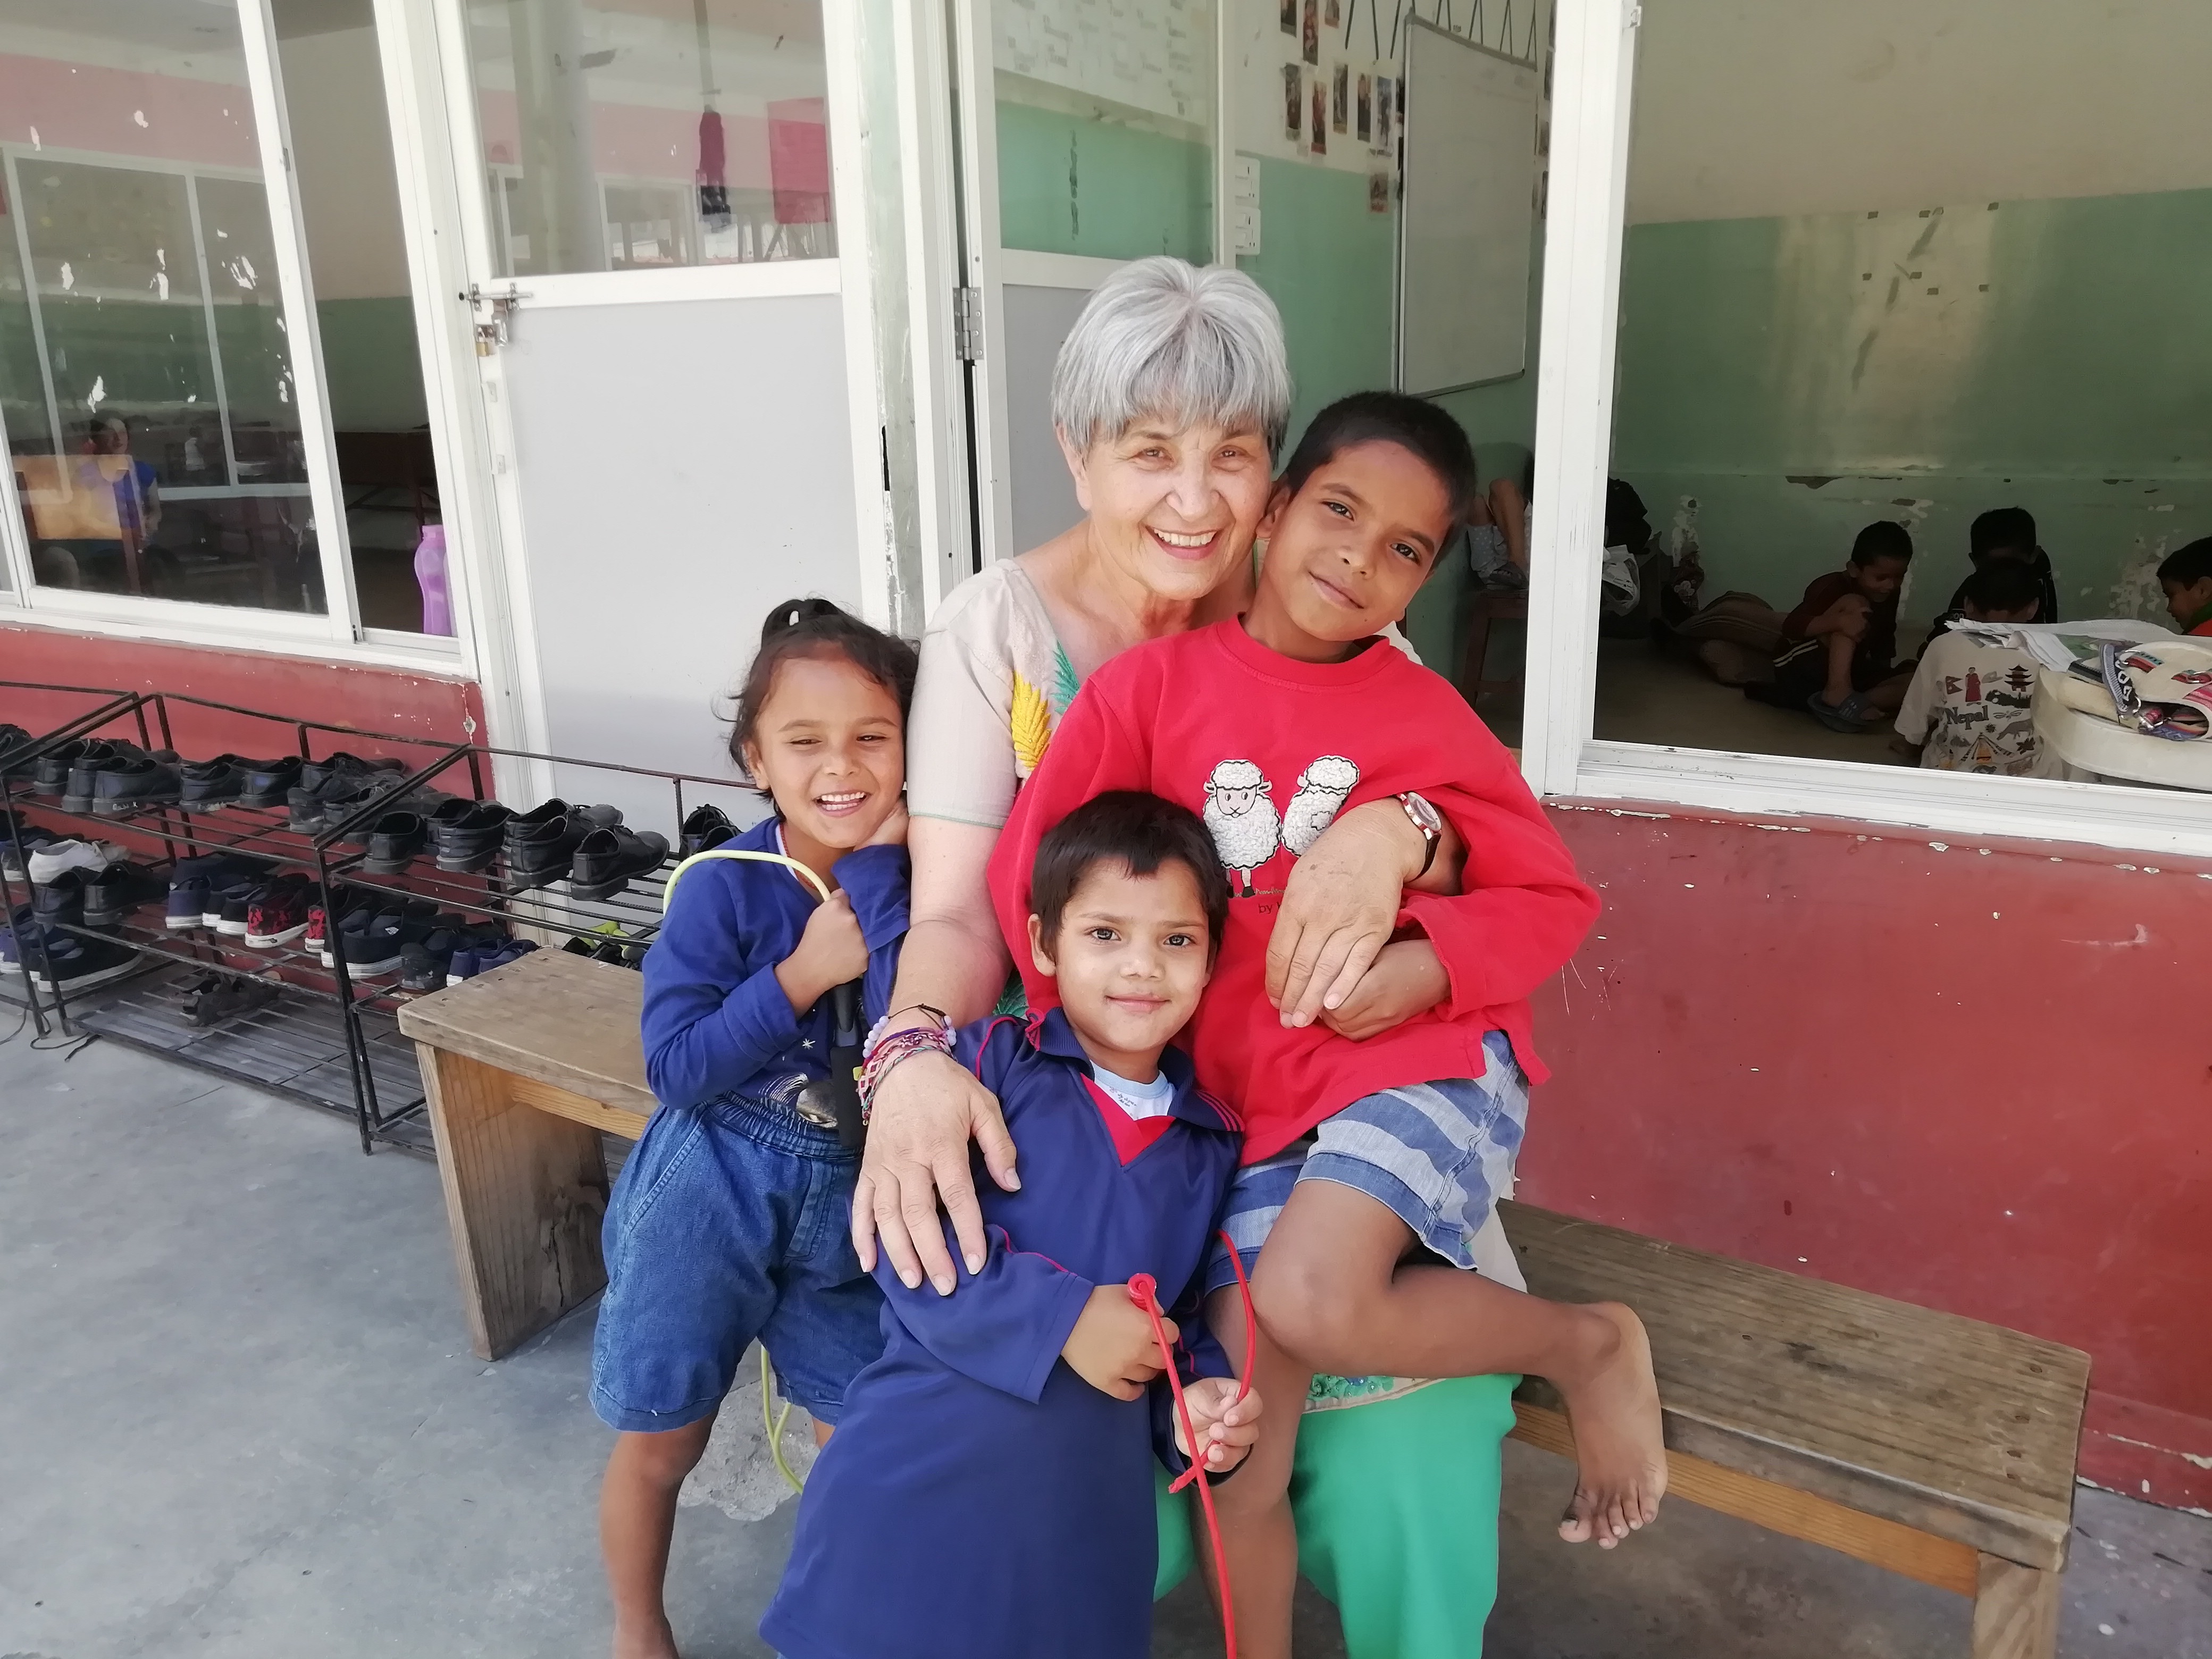 """Children from Home of Hope in Nepal spend time with their """"Aunt"""" Ellen during one of her visits in the home's courtyard in 2019. Ellen Dietrich is the founder and chairwoman of Home of Hope or Self Help Nepal as it is also known."""